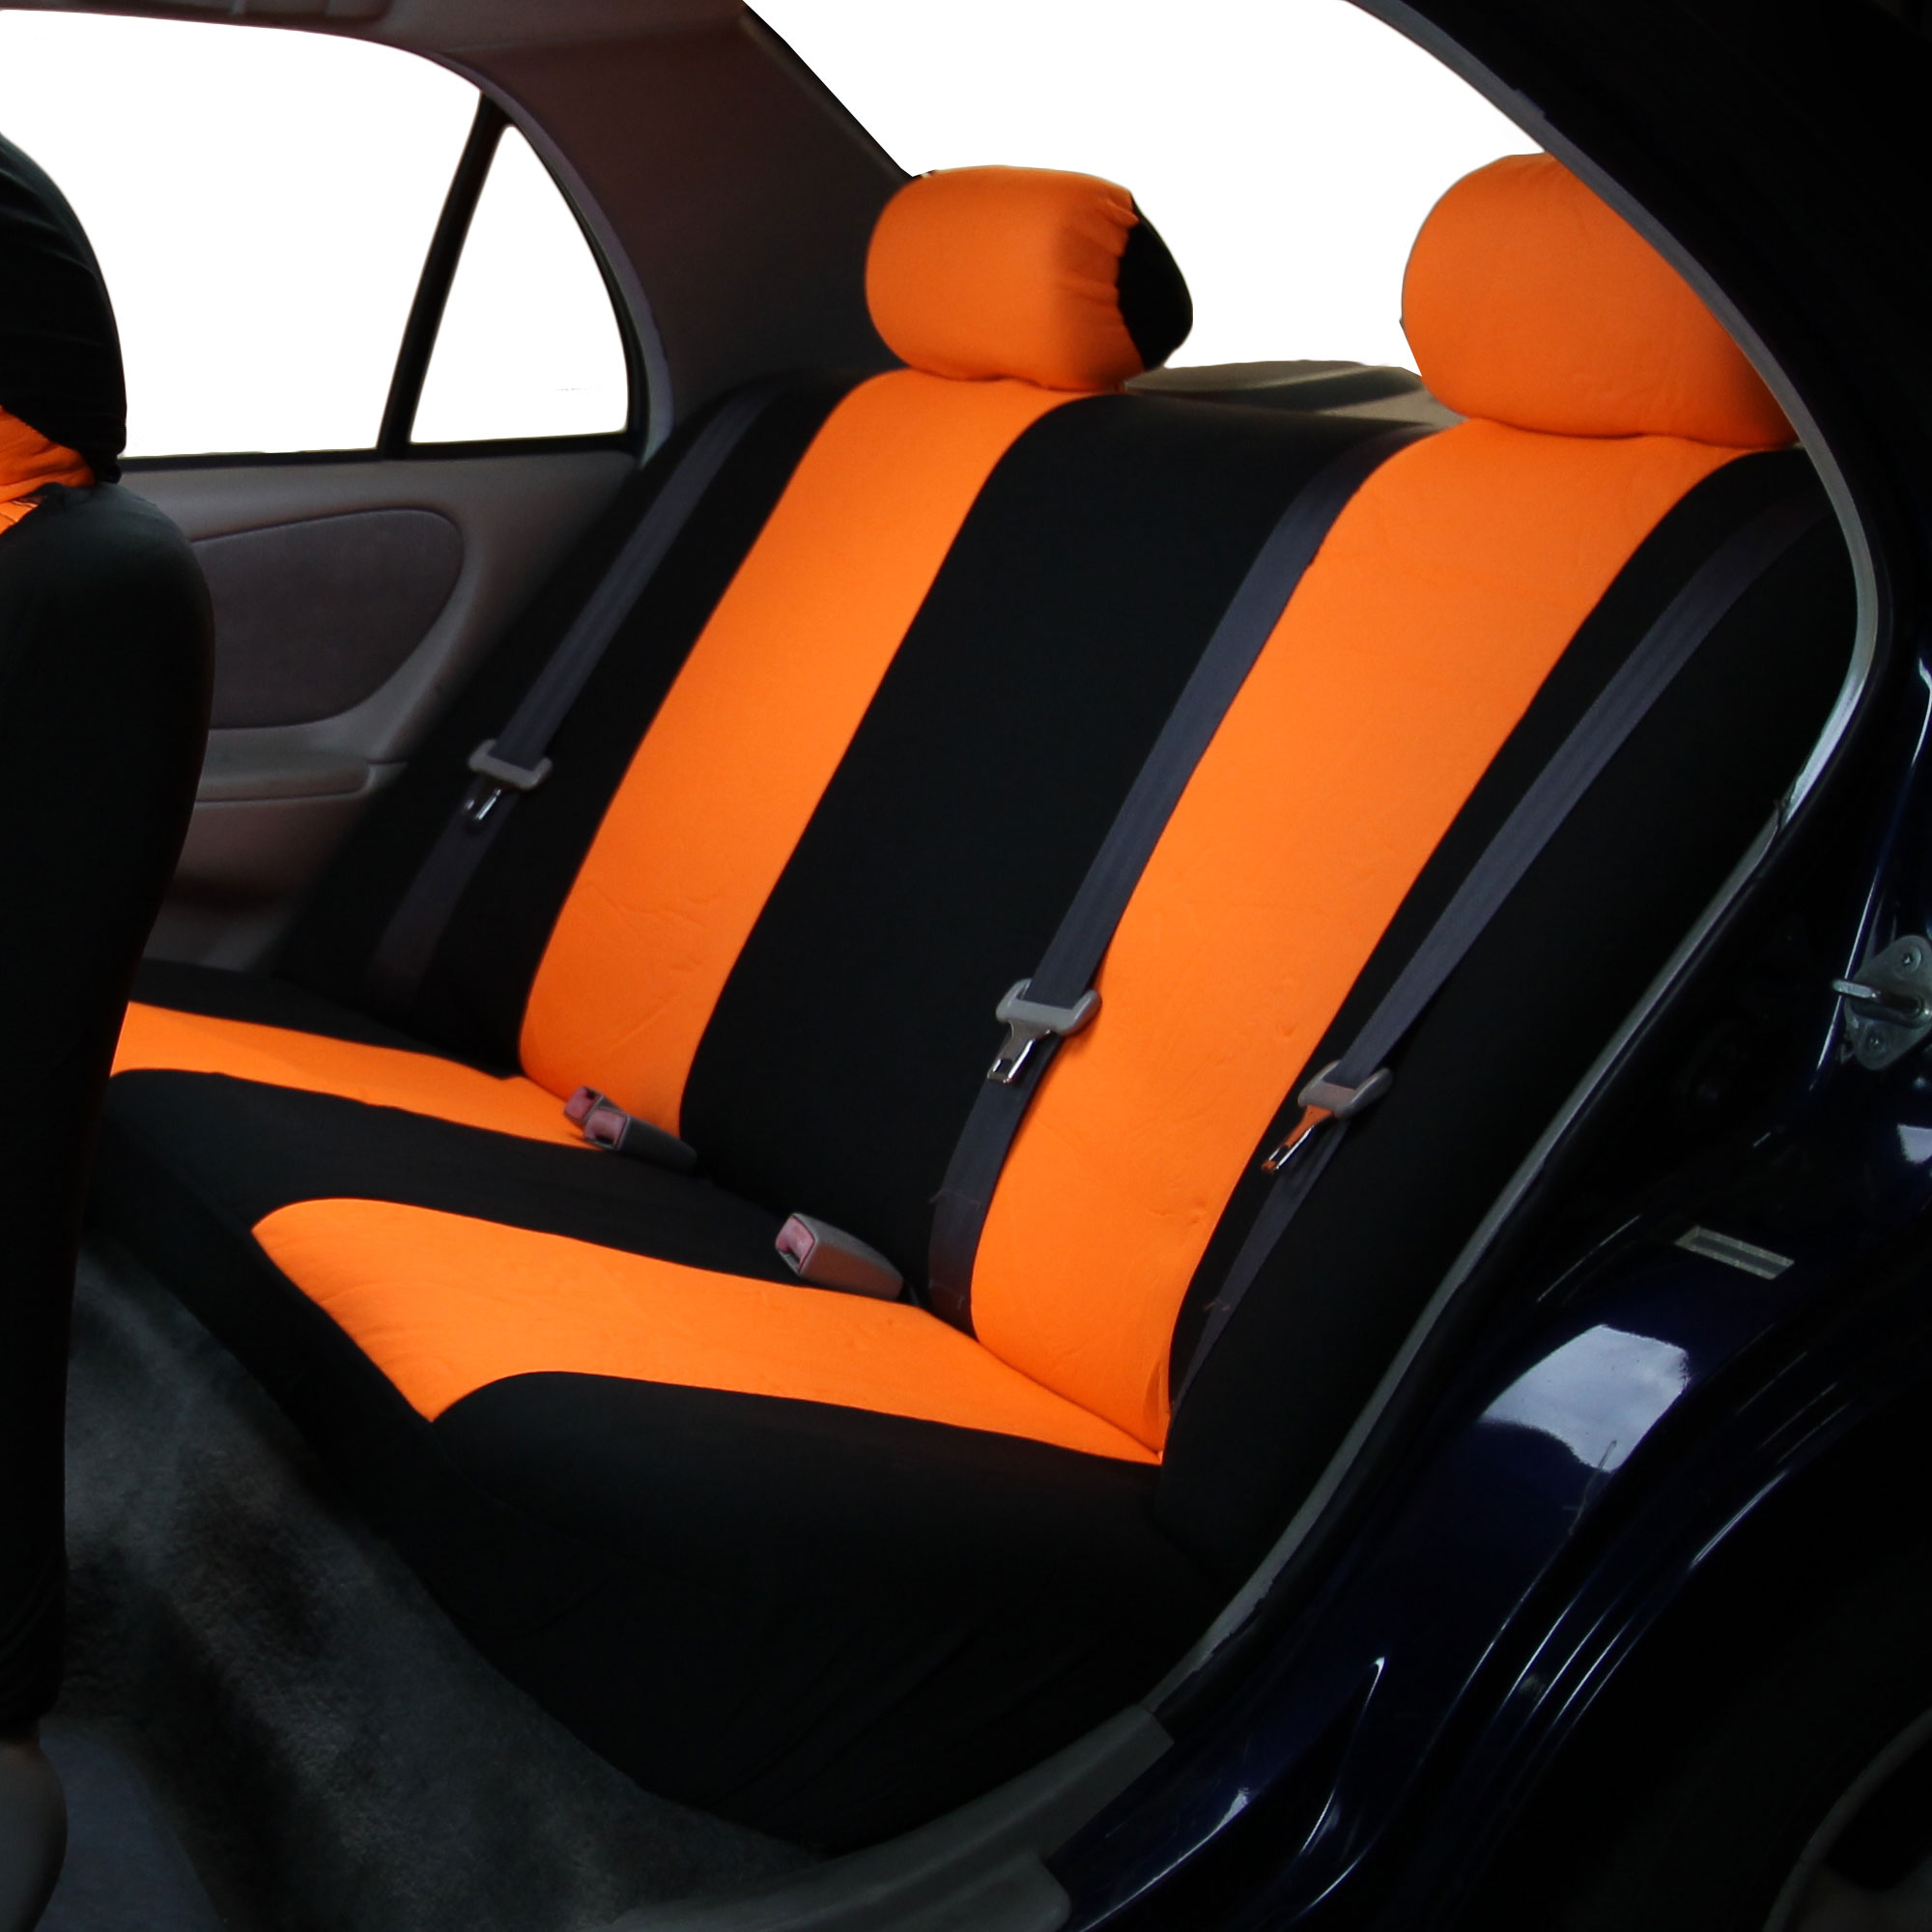 Car Seat Covers For Rear Seat Luxury Sporty For Car SUV